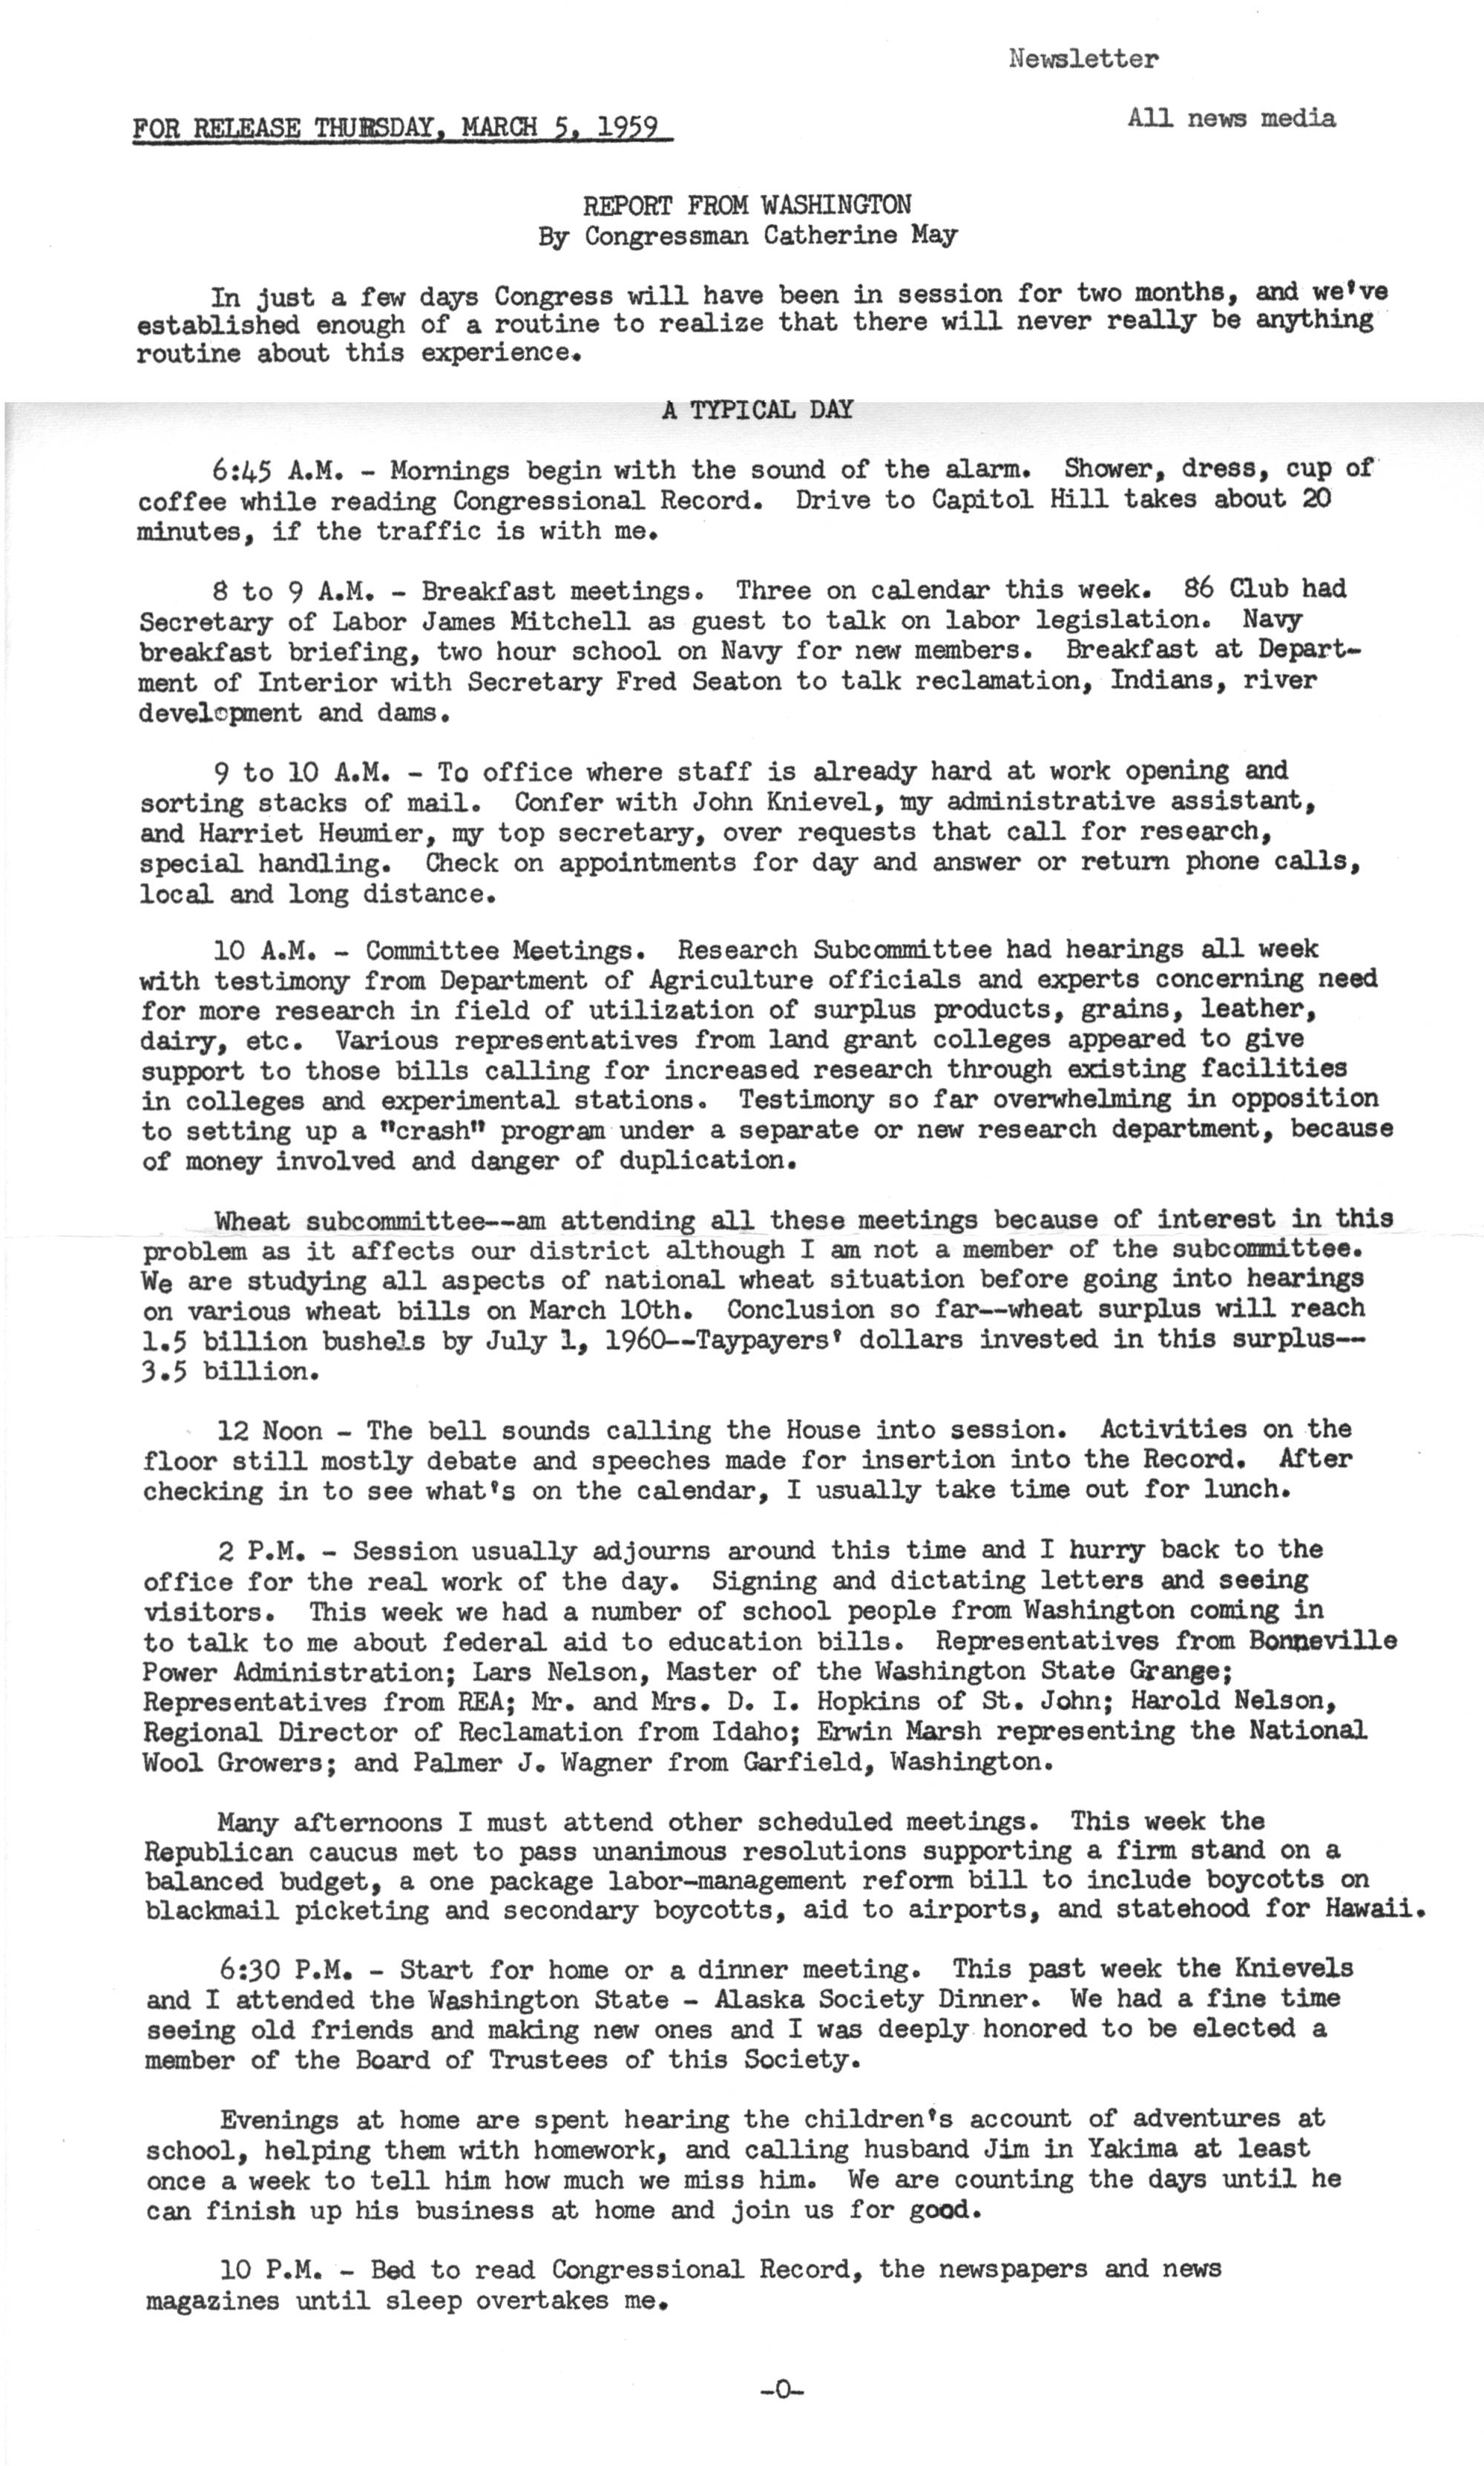 Report from Washington  5 March 1959 - Catherine May Congressional